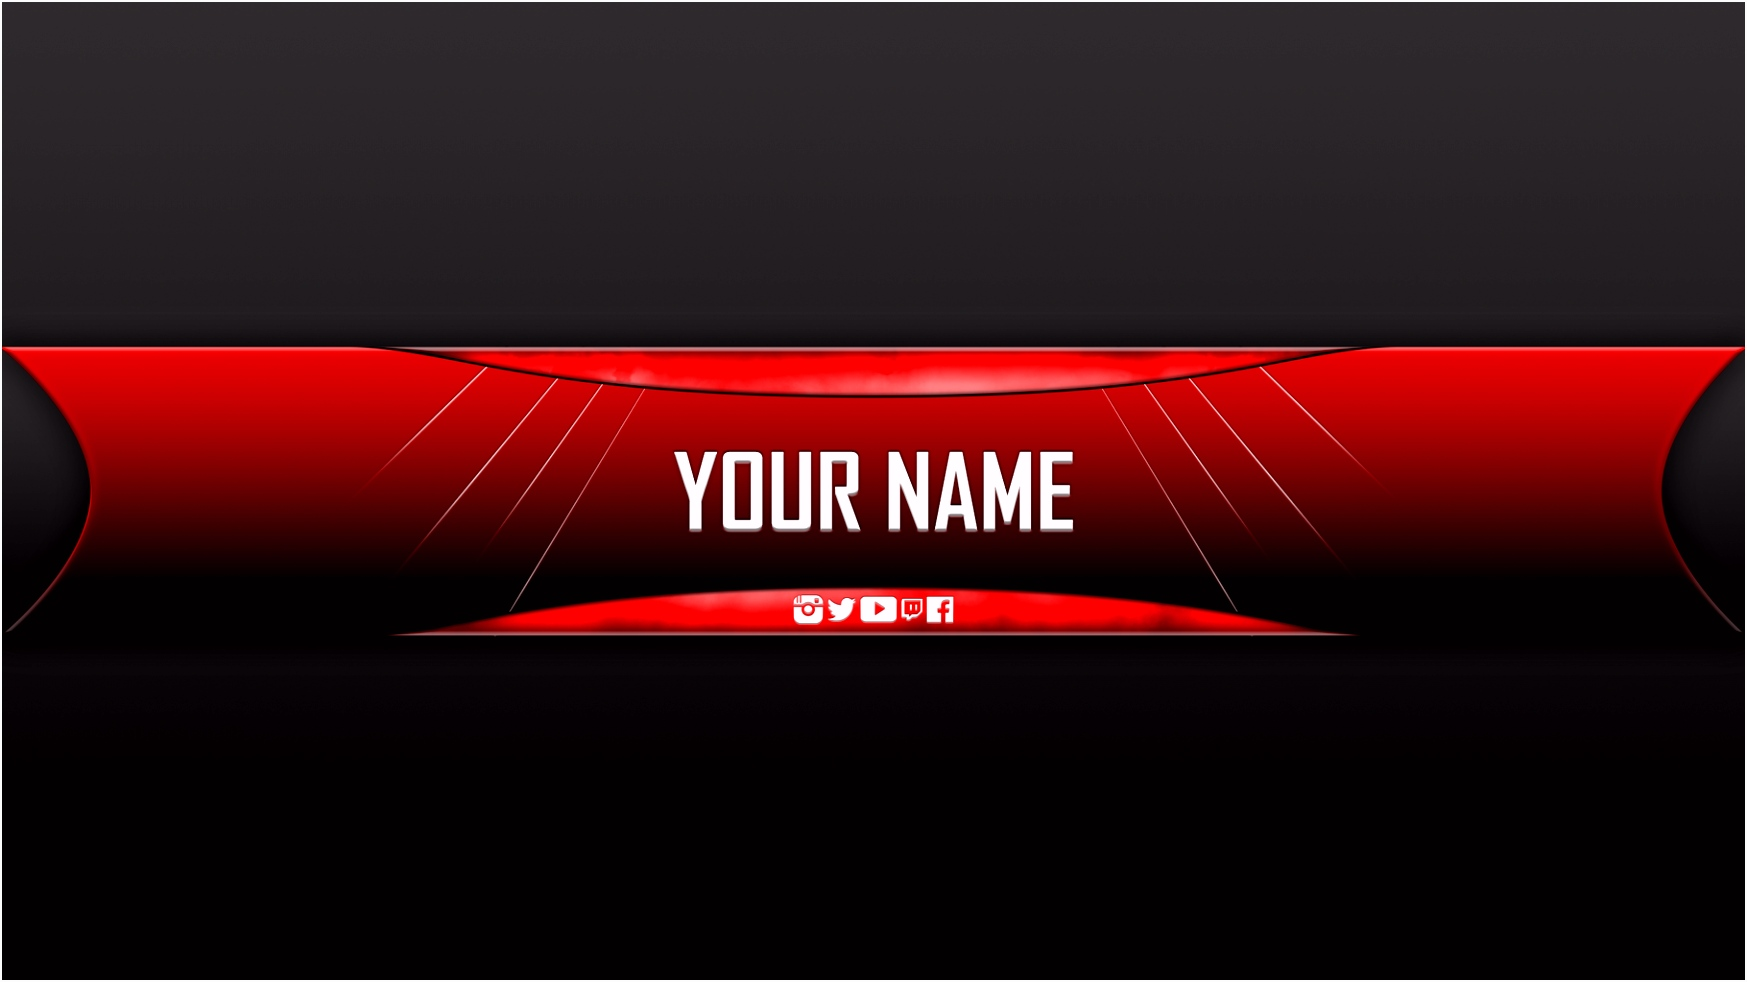 Free Banner Template shop Inspirational Design Free Youtube